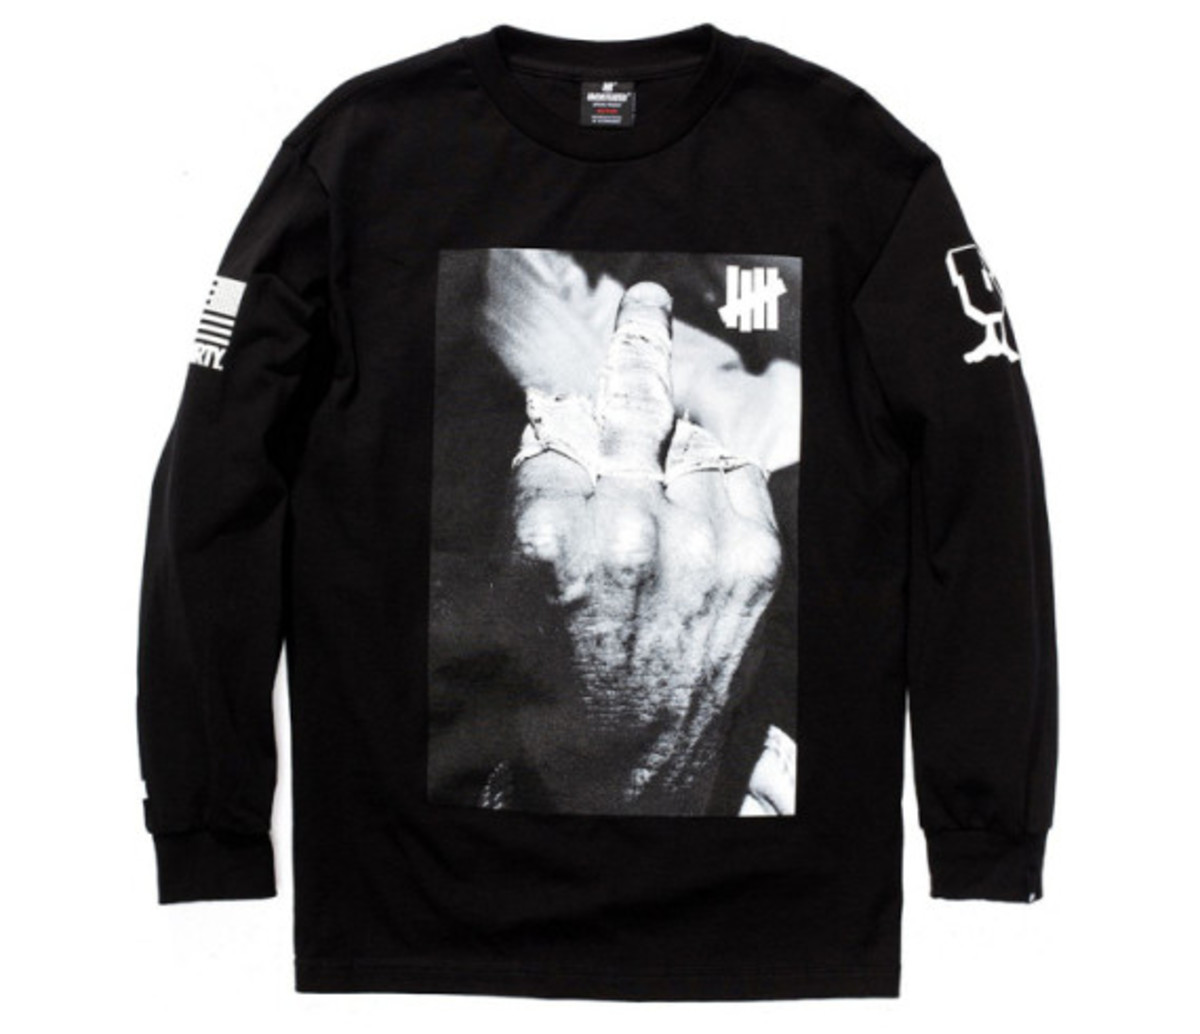 kenneth-cappello-undefeated-bloodchoke-long-sleeve-tee-03